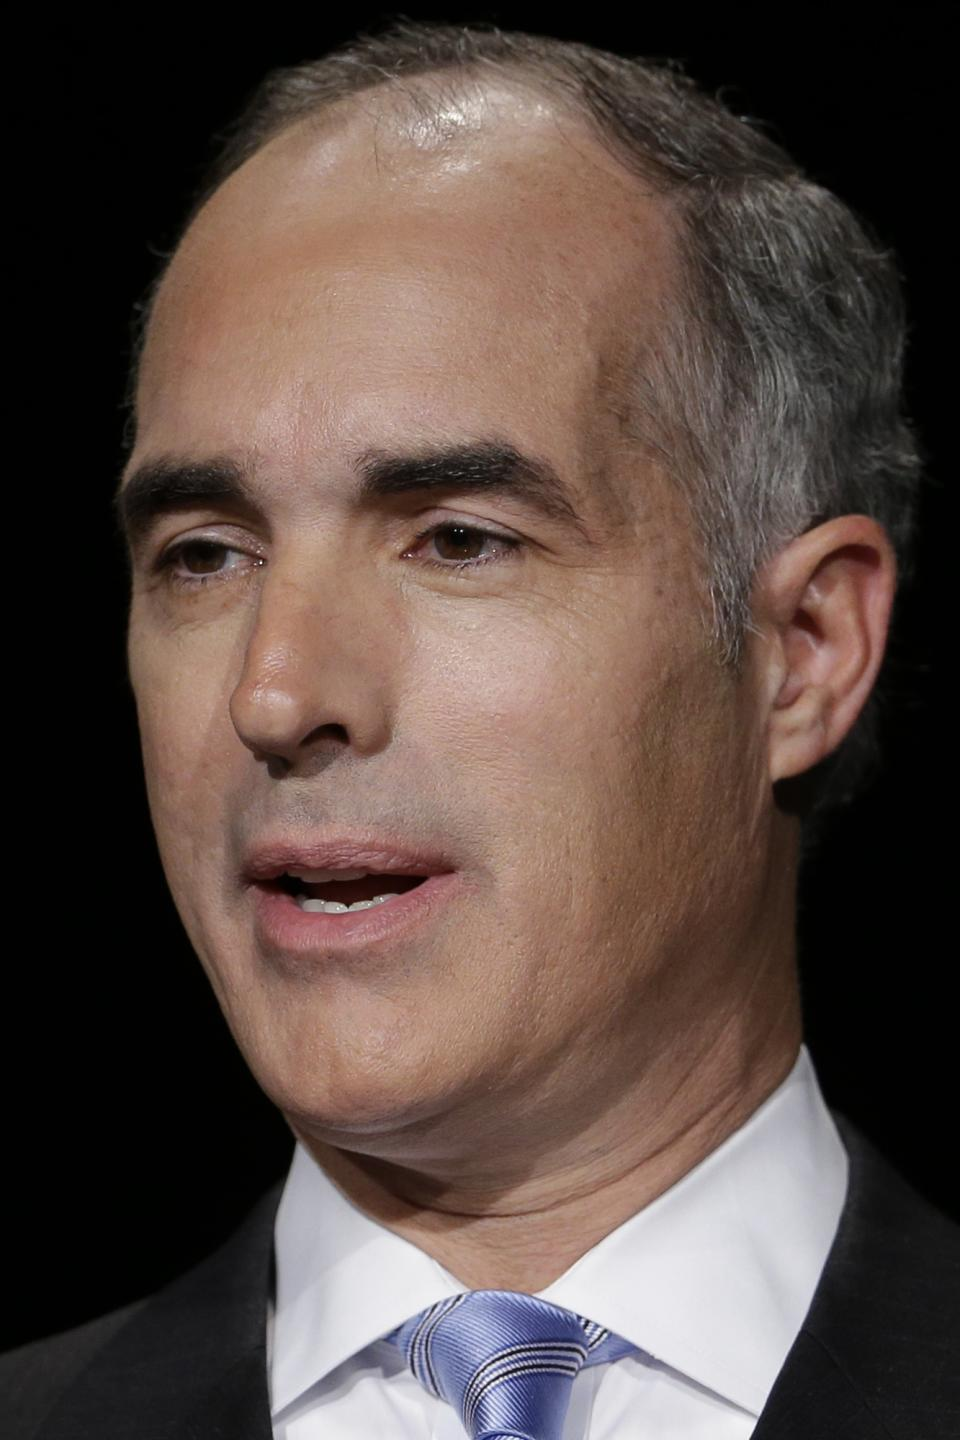 Democratic U.S. Sen. Bob Casey speaks during a debate between Pennsylvania's candidates for U.S. Senate, at the WPVI-TV studio, Friday, Oct. 26, 2012, in Philadelphia. (AP Photo/Matt Rourke)